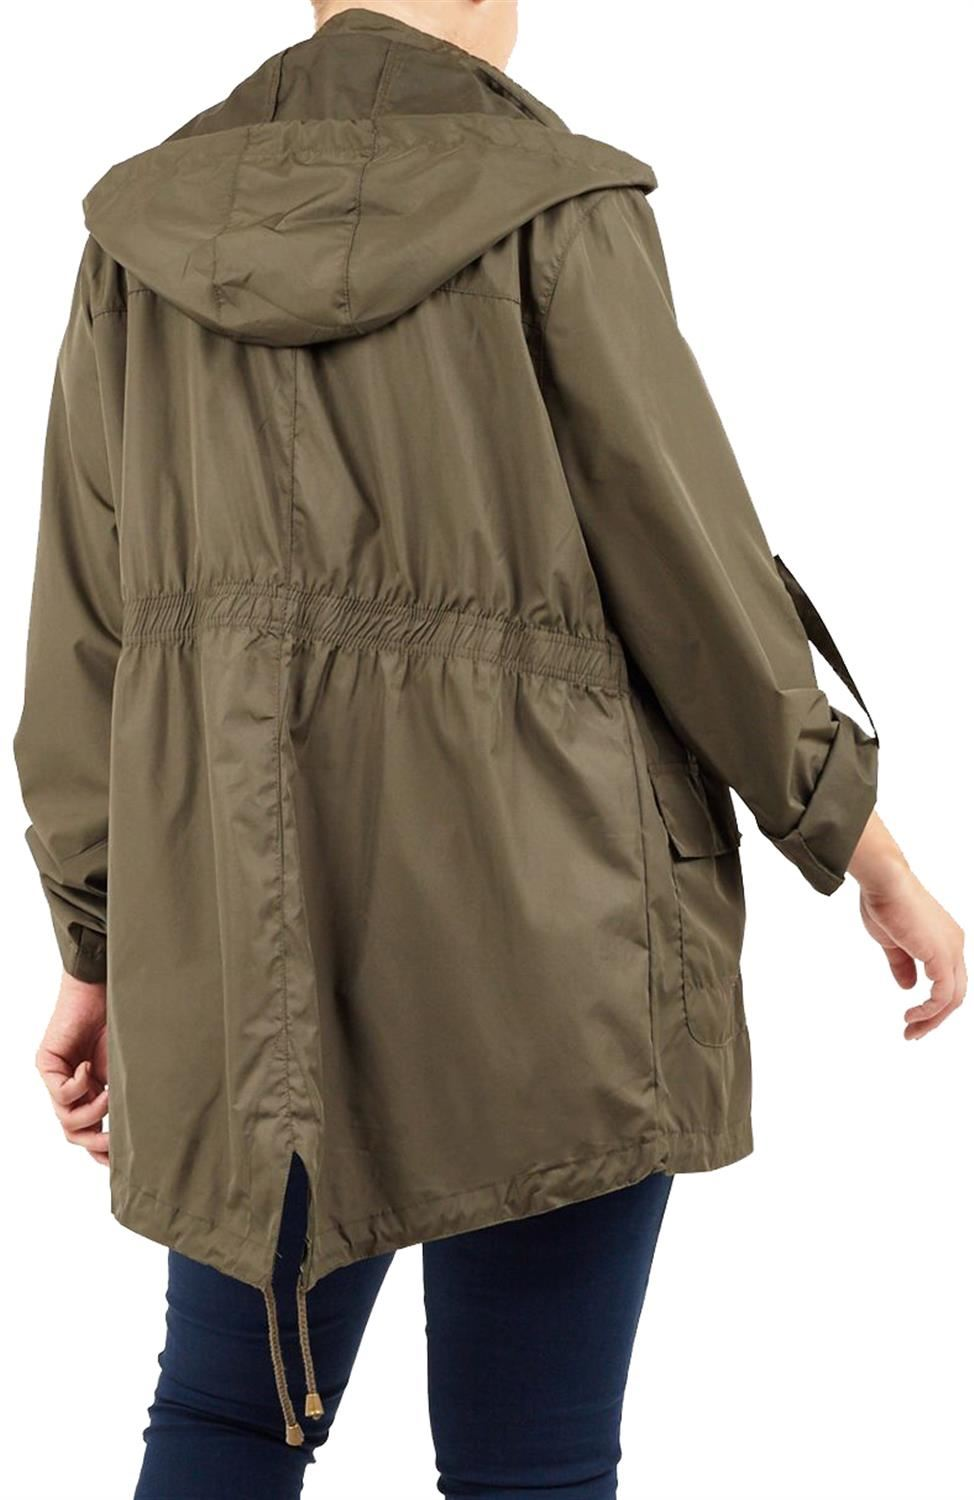 New-Ladies-Hooded-Plain-Contrast-Zip-Showerproof-Parka-Raincoats-Jackets thumbnail 15